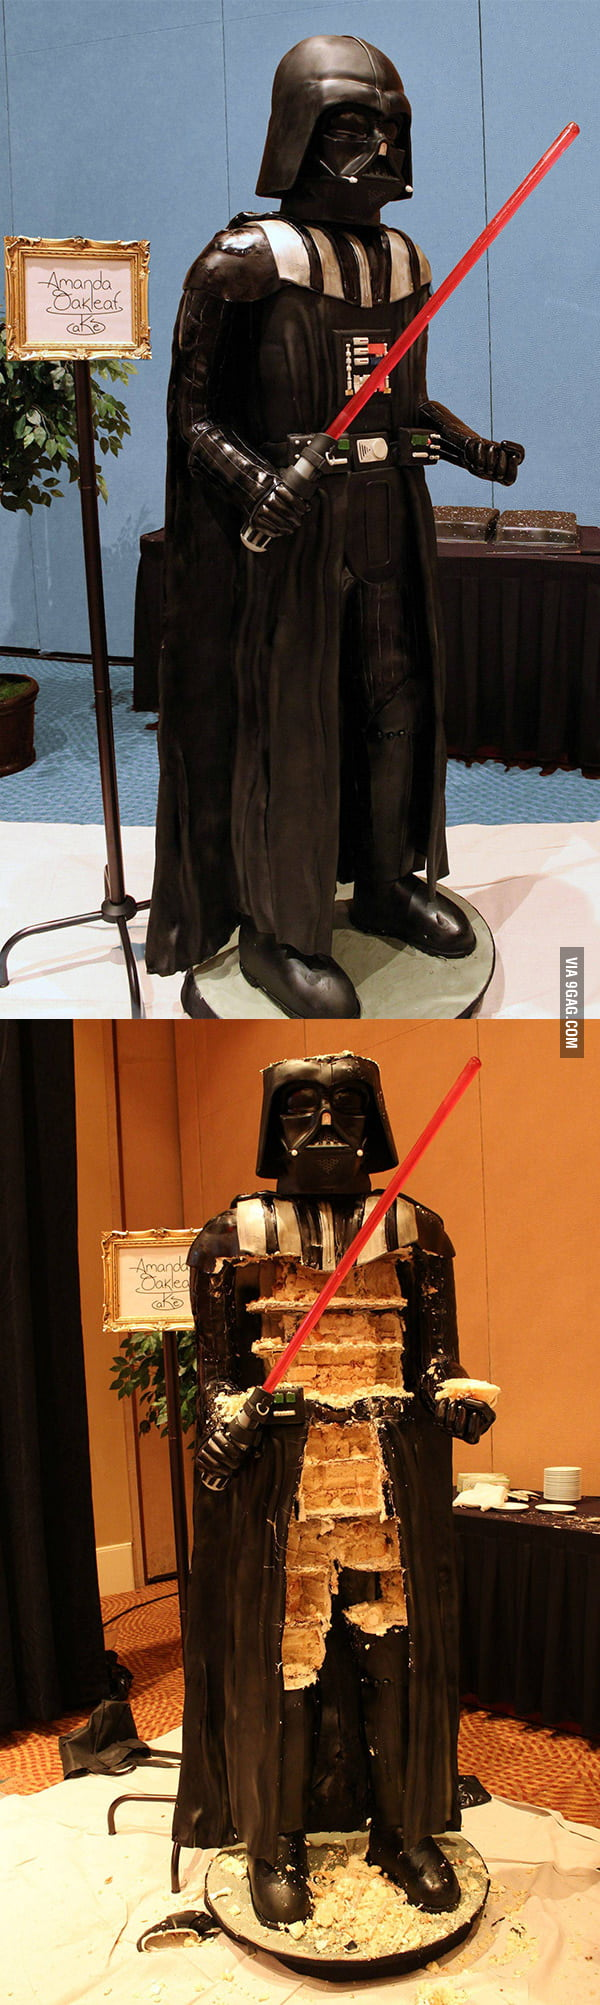 1:1 Darth Vader Cake: May the fork be with you!